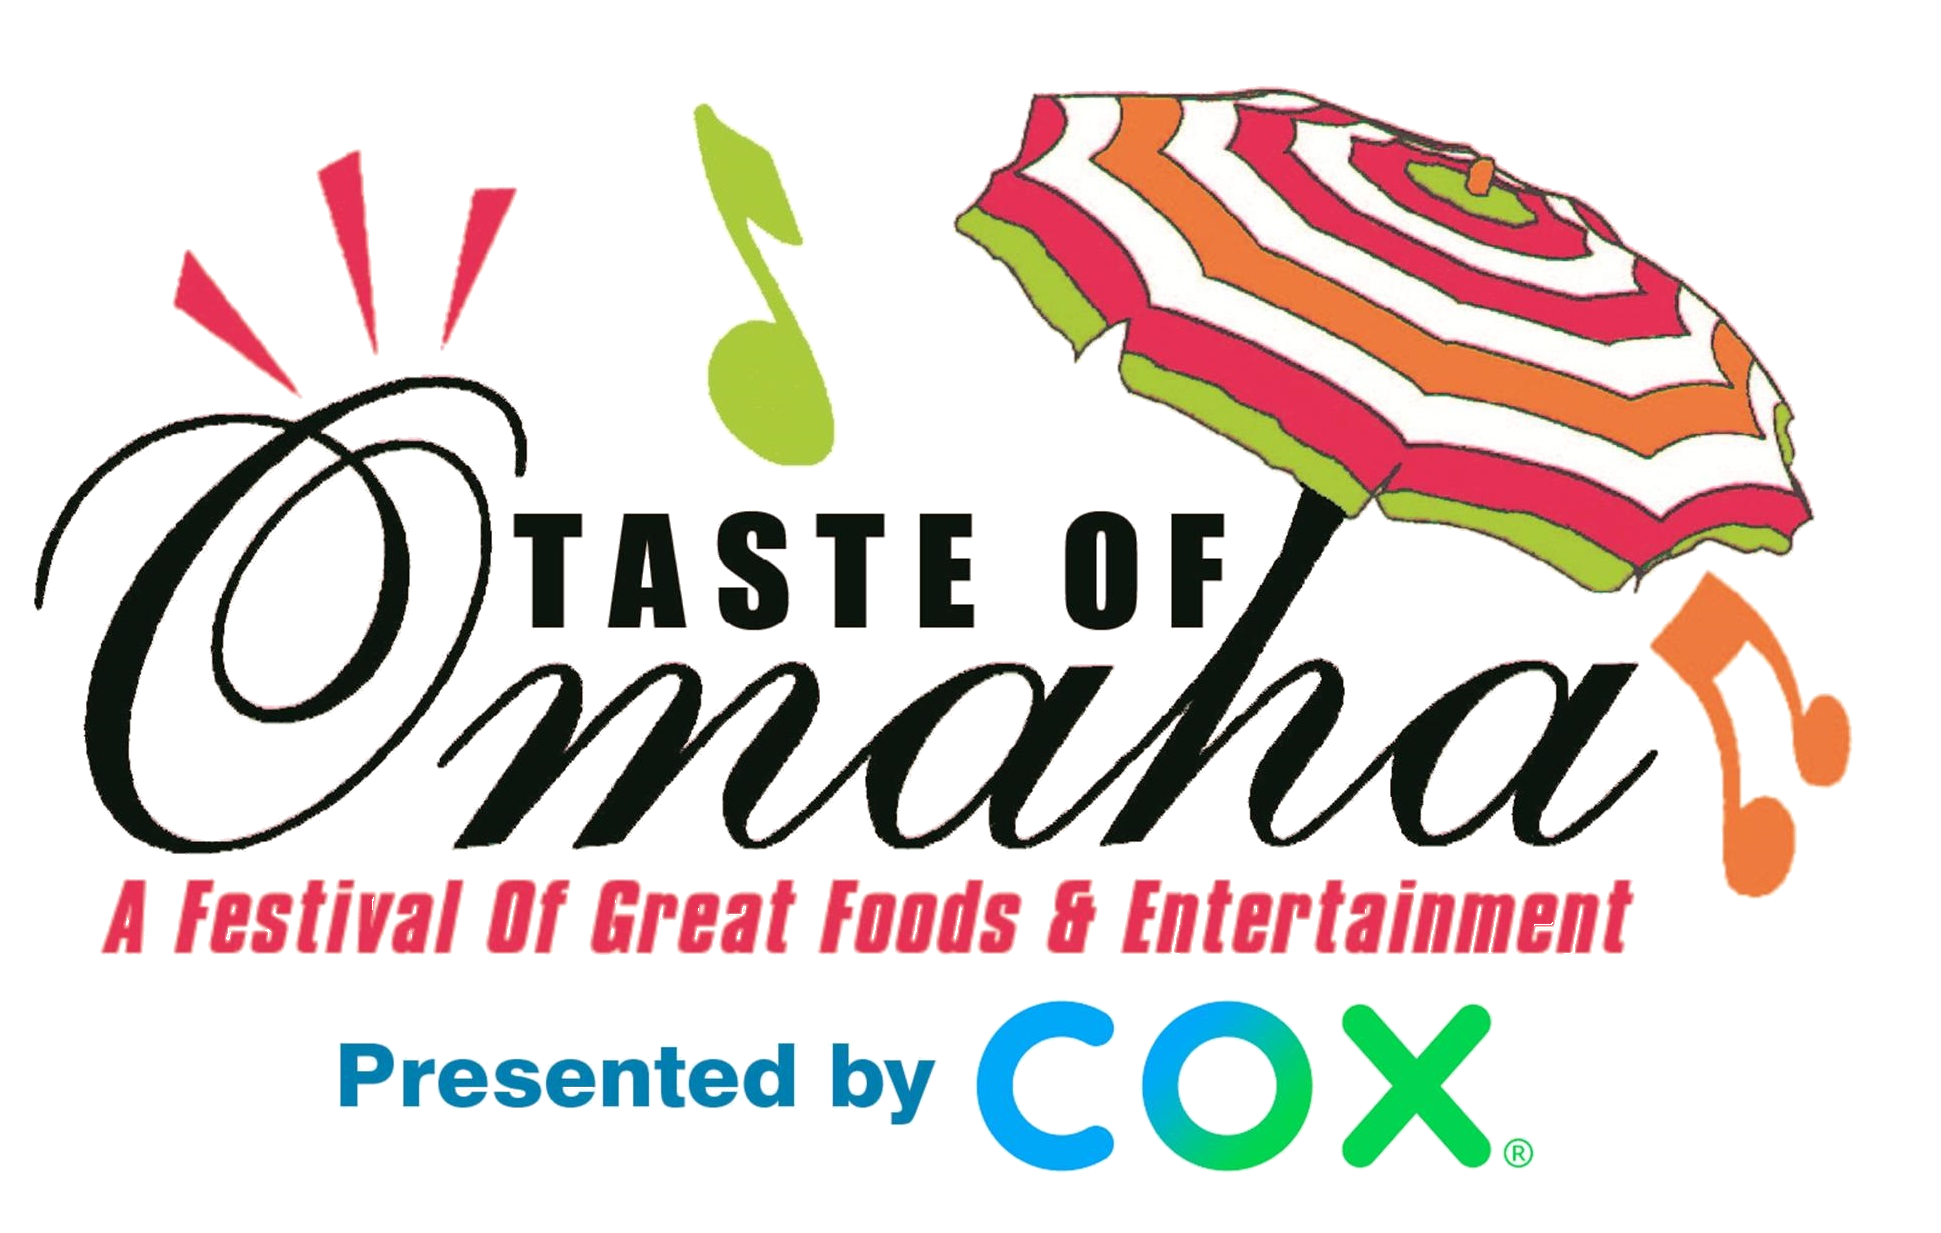 TASTE OF OMAHA | 22nd Annual